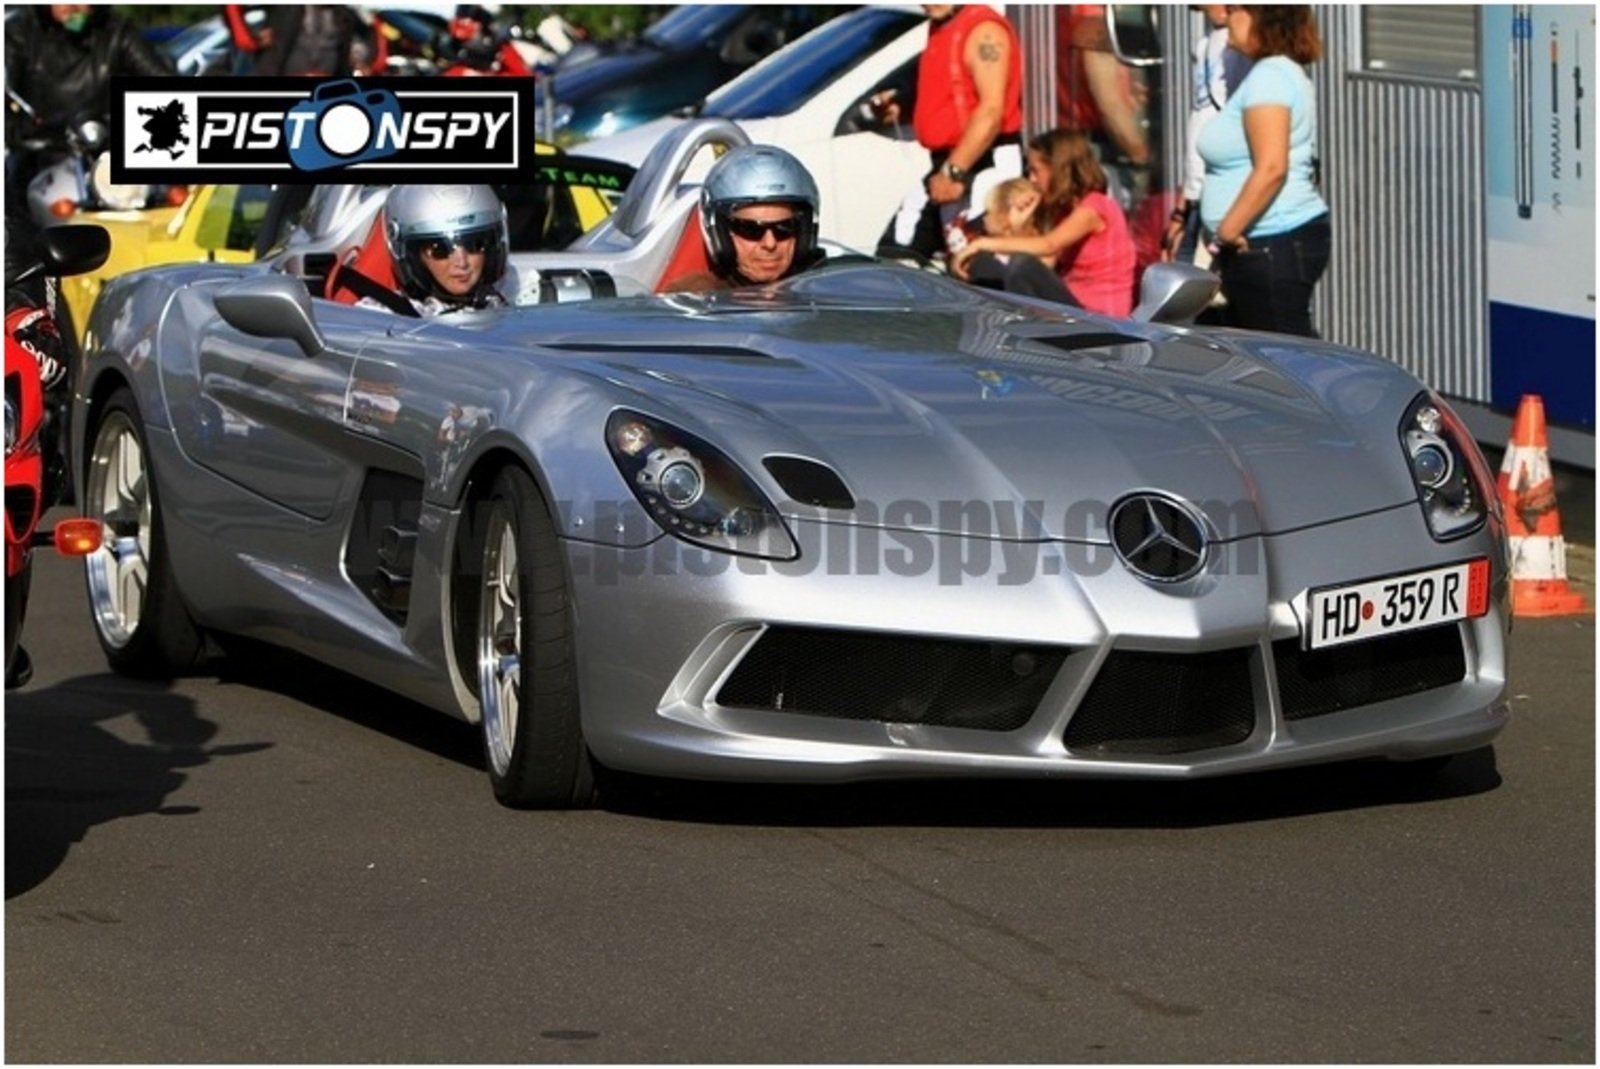 mercedes mclaren slr stirling moss takes a lap on the nurburgring news top speed. Black Bedroom Furniture Sets. Home Design Ideas